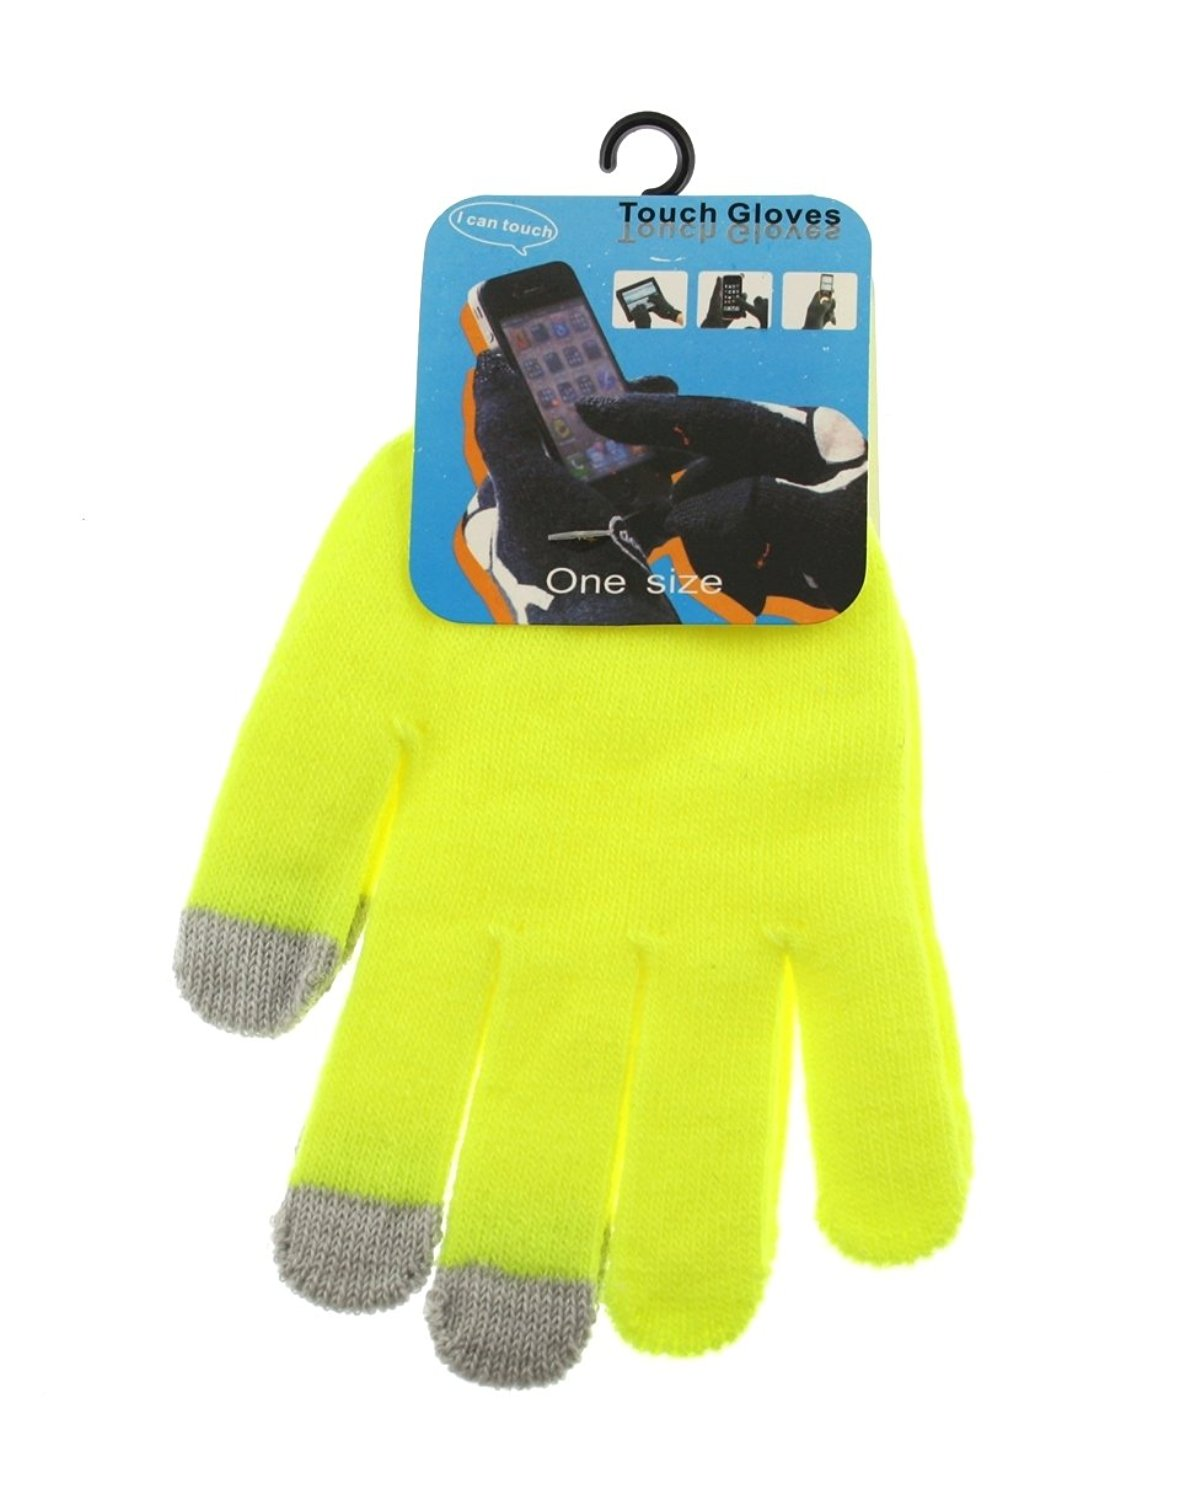 Zac/'s Alter Ego� Warm Winter iTouch Gloves